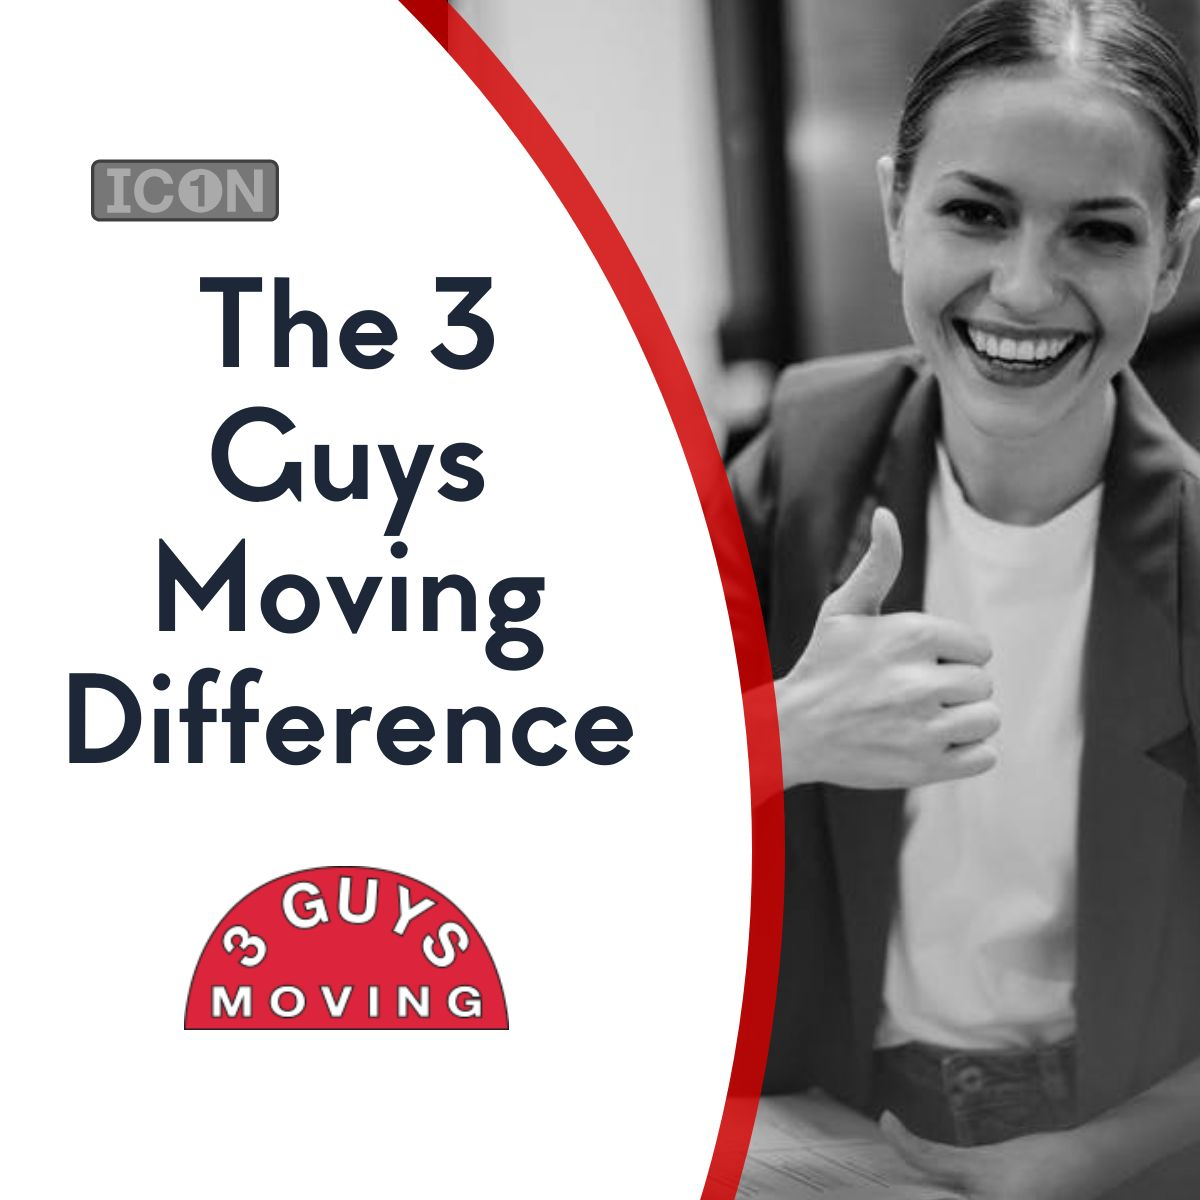 The 3 Guys Moving Difference - The 3 Guys Moving Difference